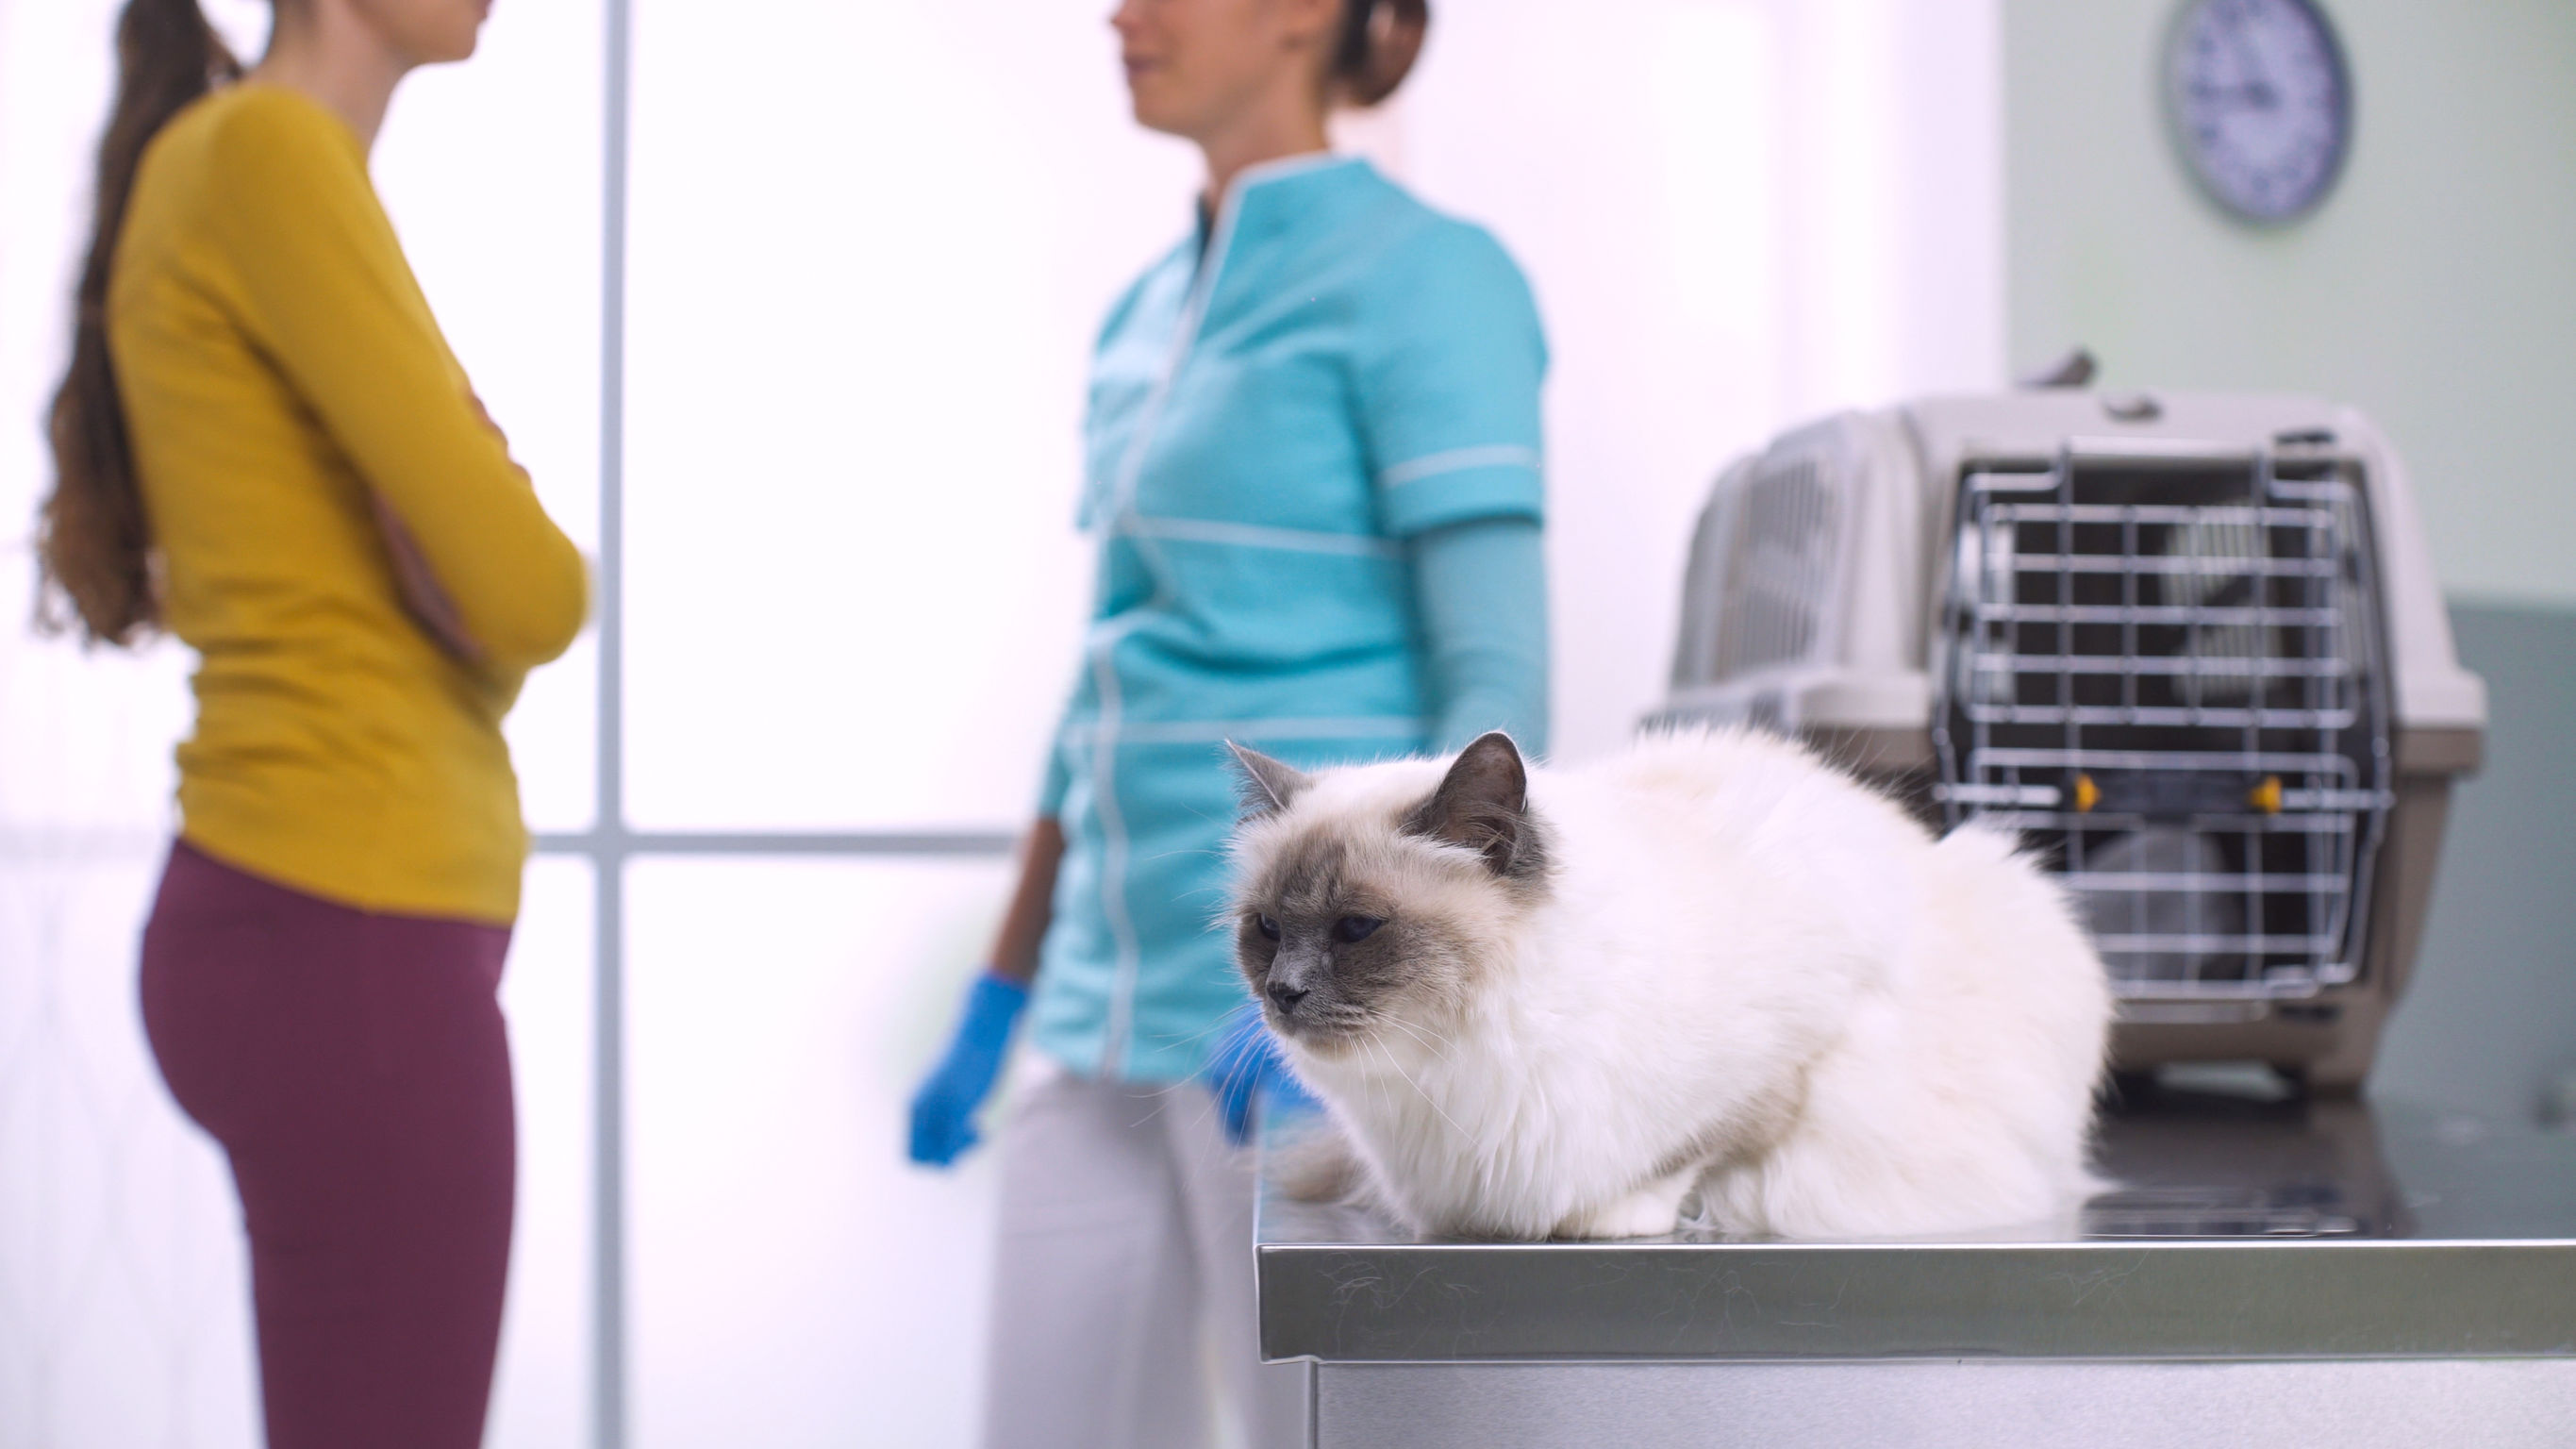 Beautiful long hair cat at the vet clinic, its owner and the doctor are talking in the background